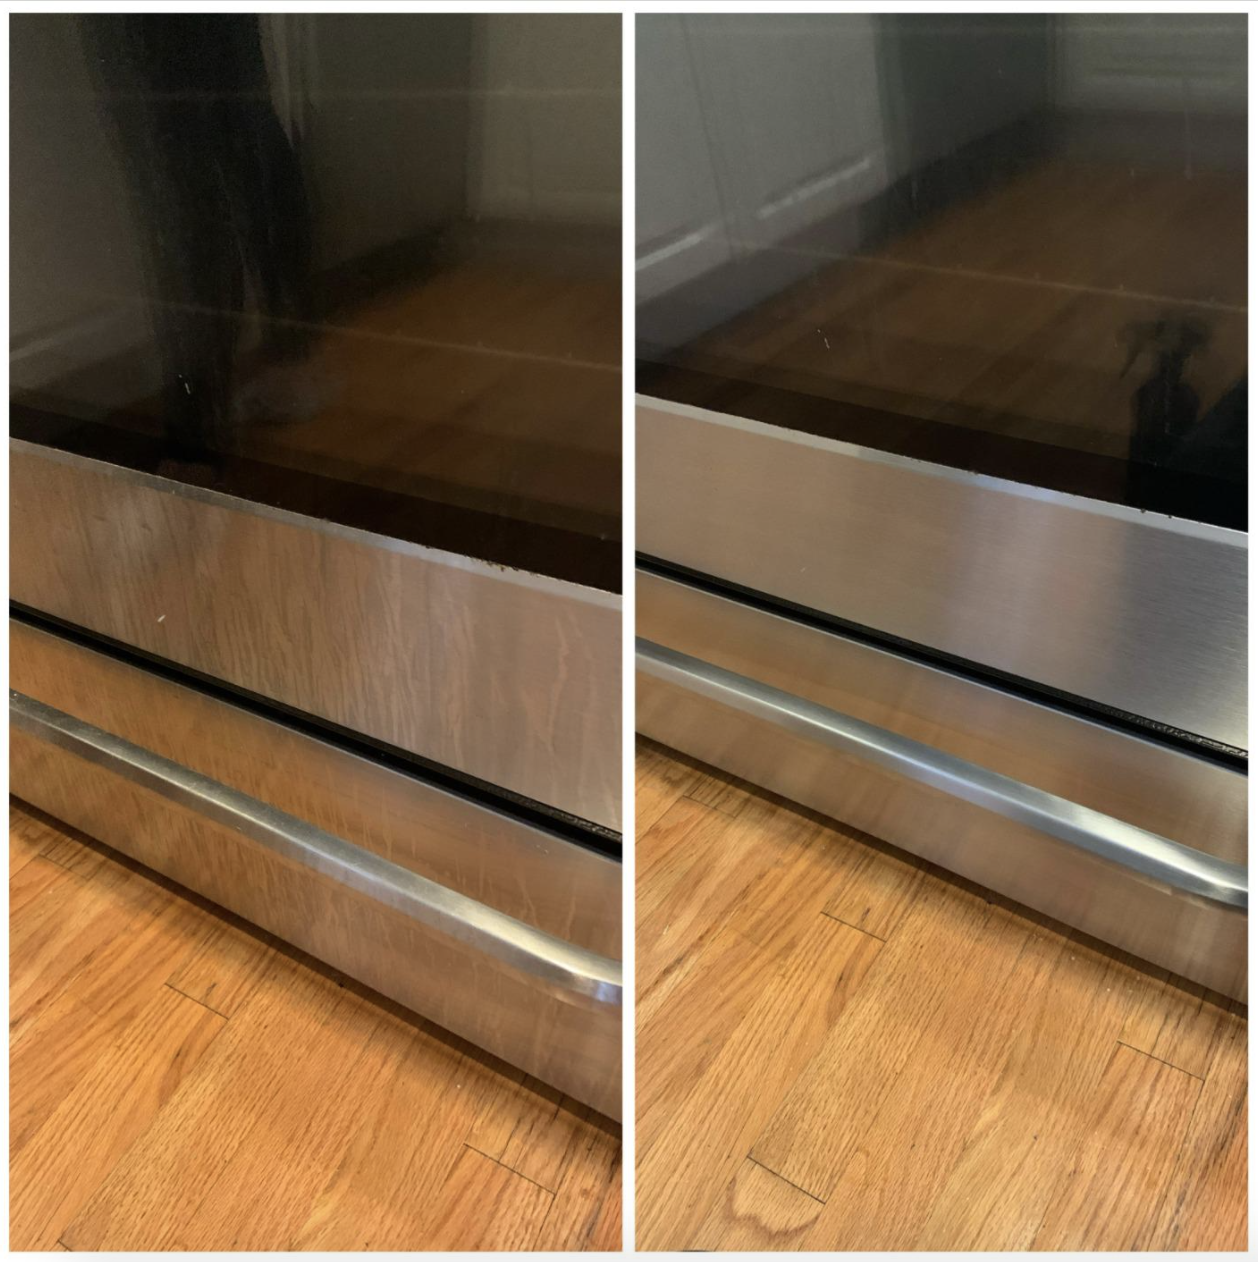 A customer review photo showing before and after using the polish on their oven